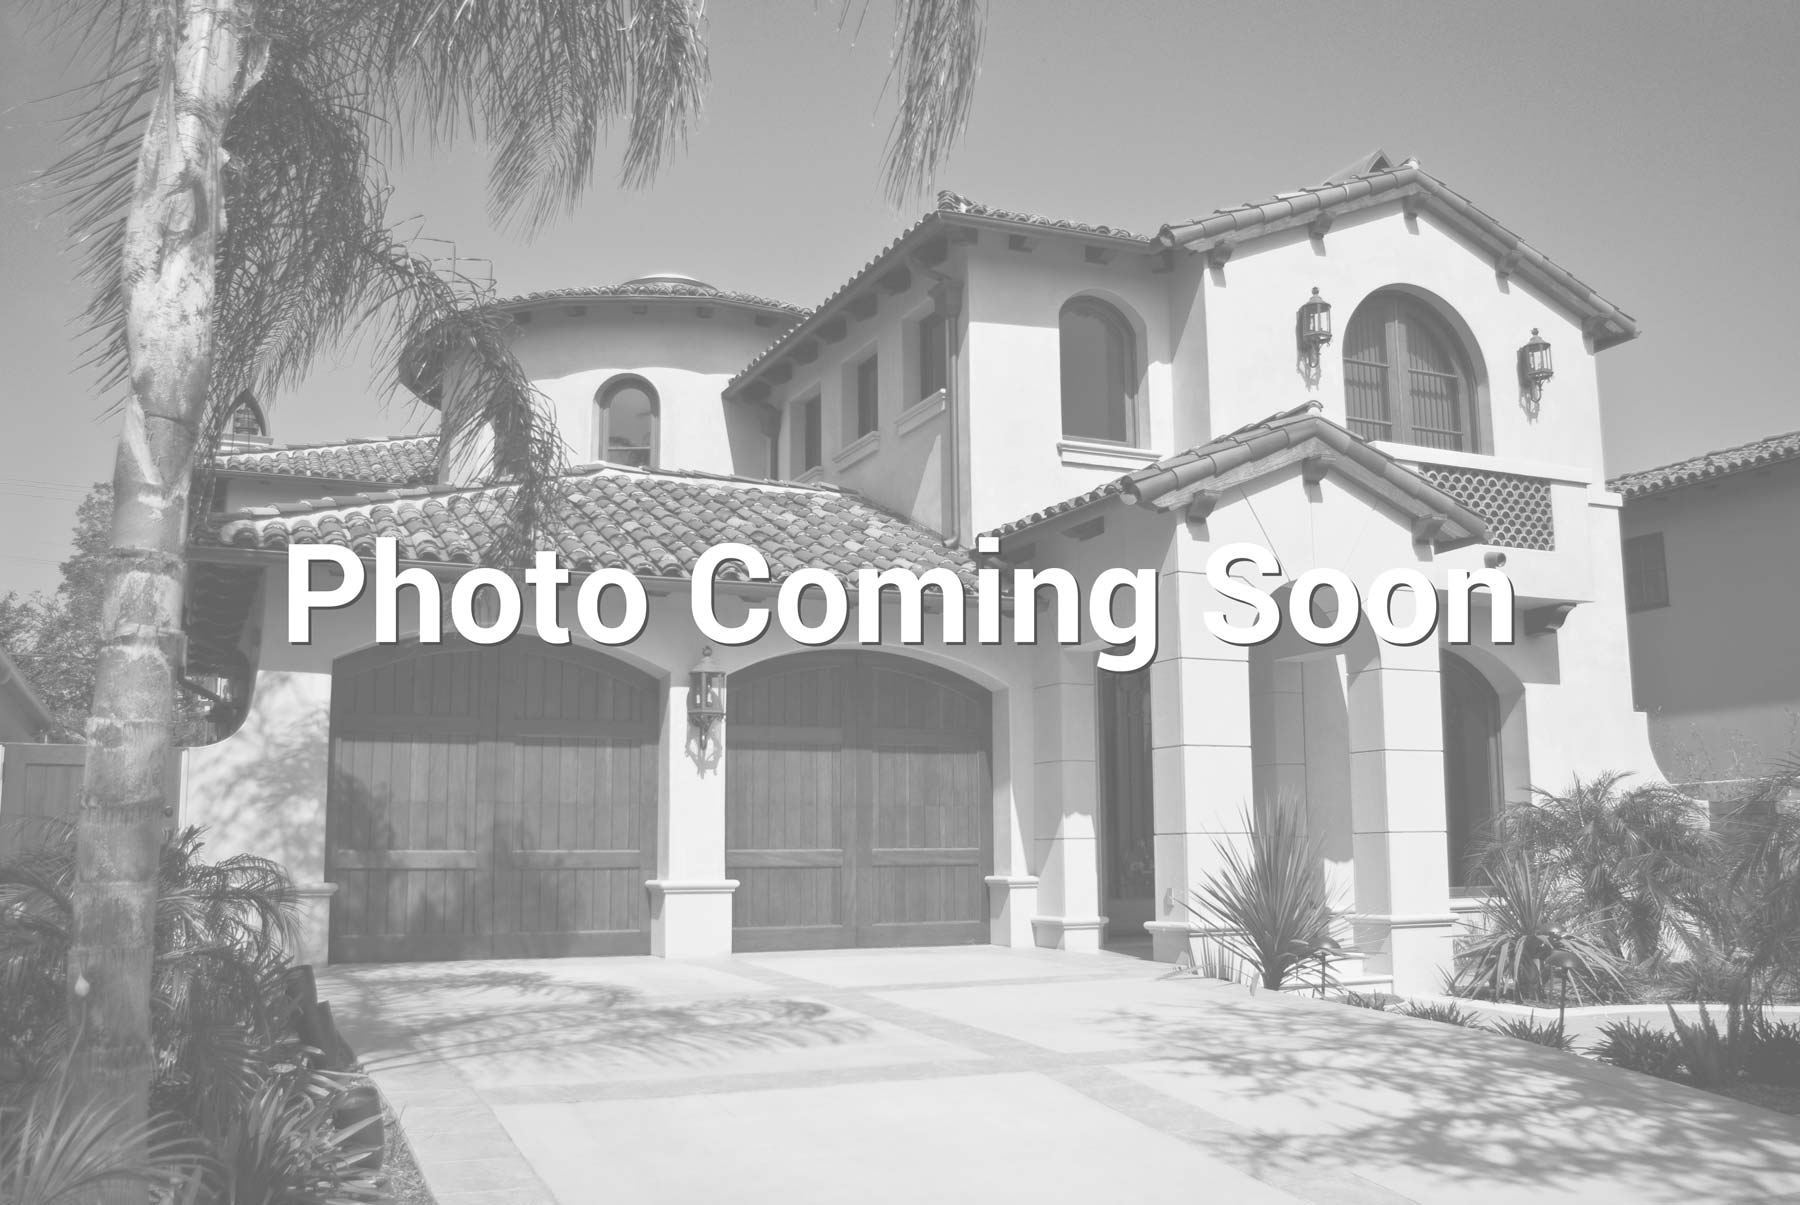 $325,000 - 4Br/2Ba -  for Sale in None Available, Ridely Park